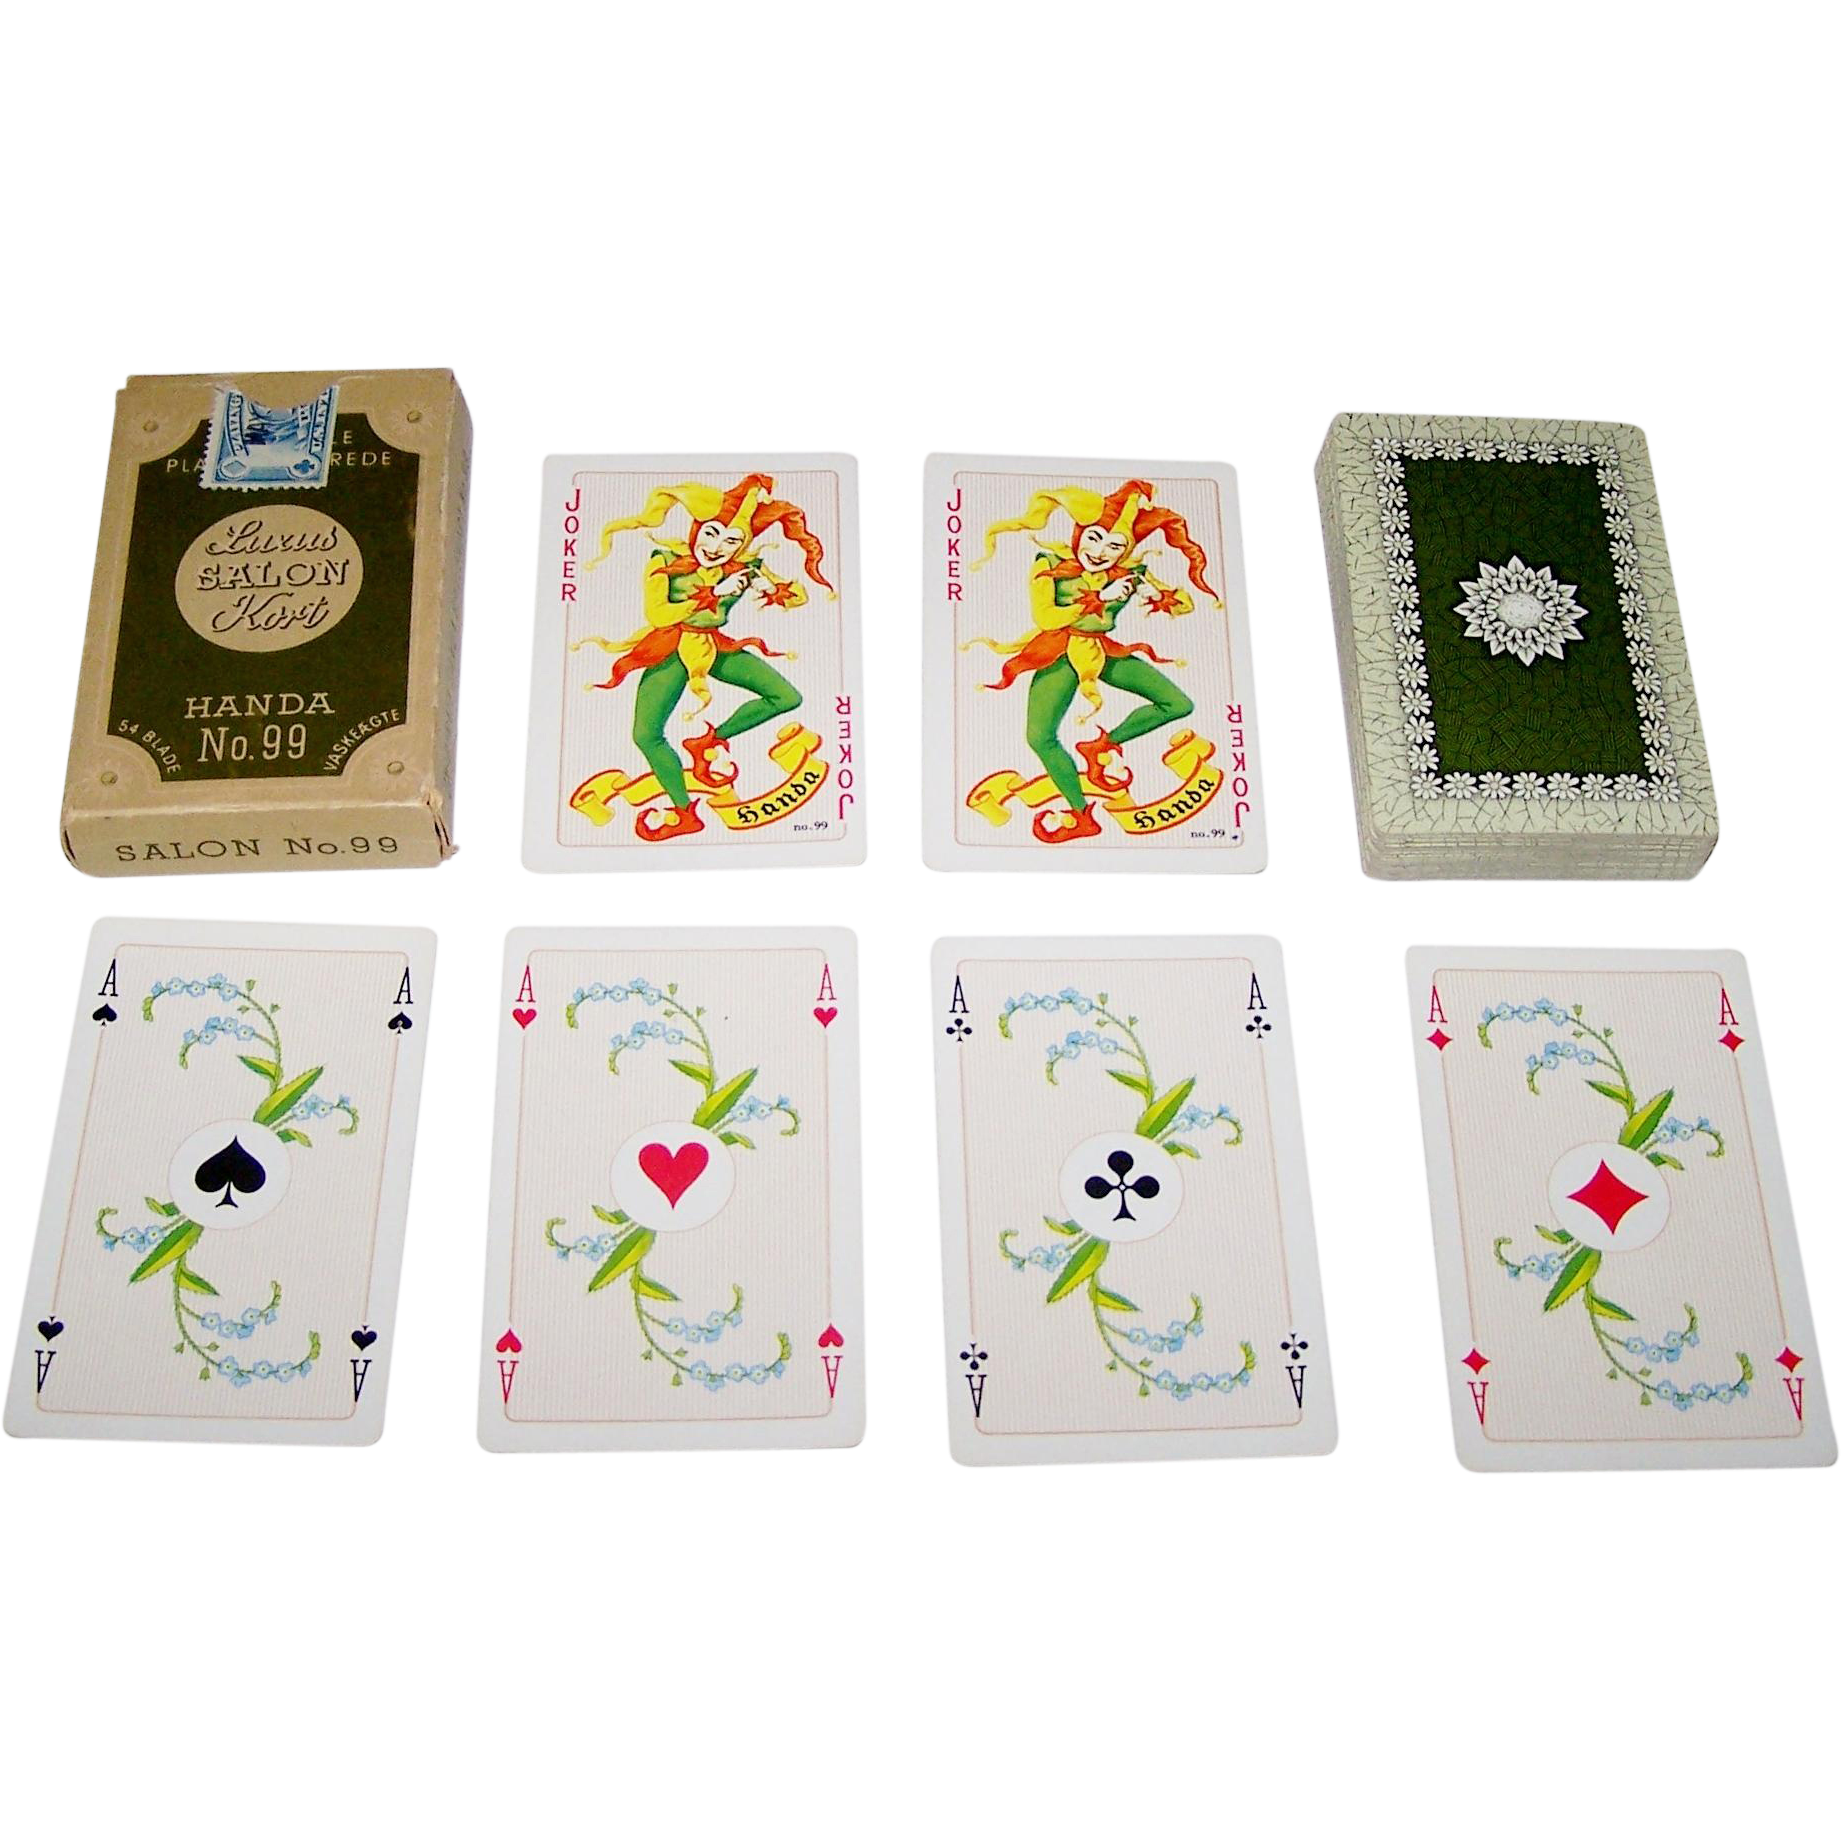 "Handa ""Luxus Salon No.99"" Playing Cards, c.1962"